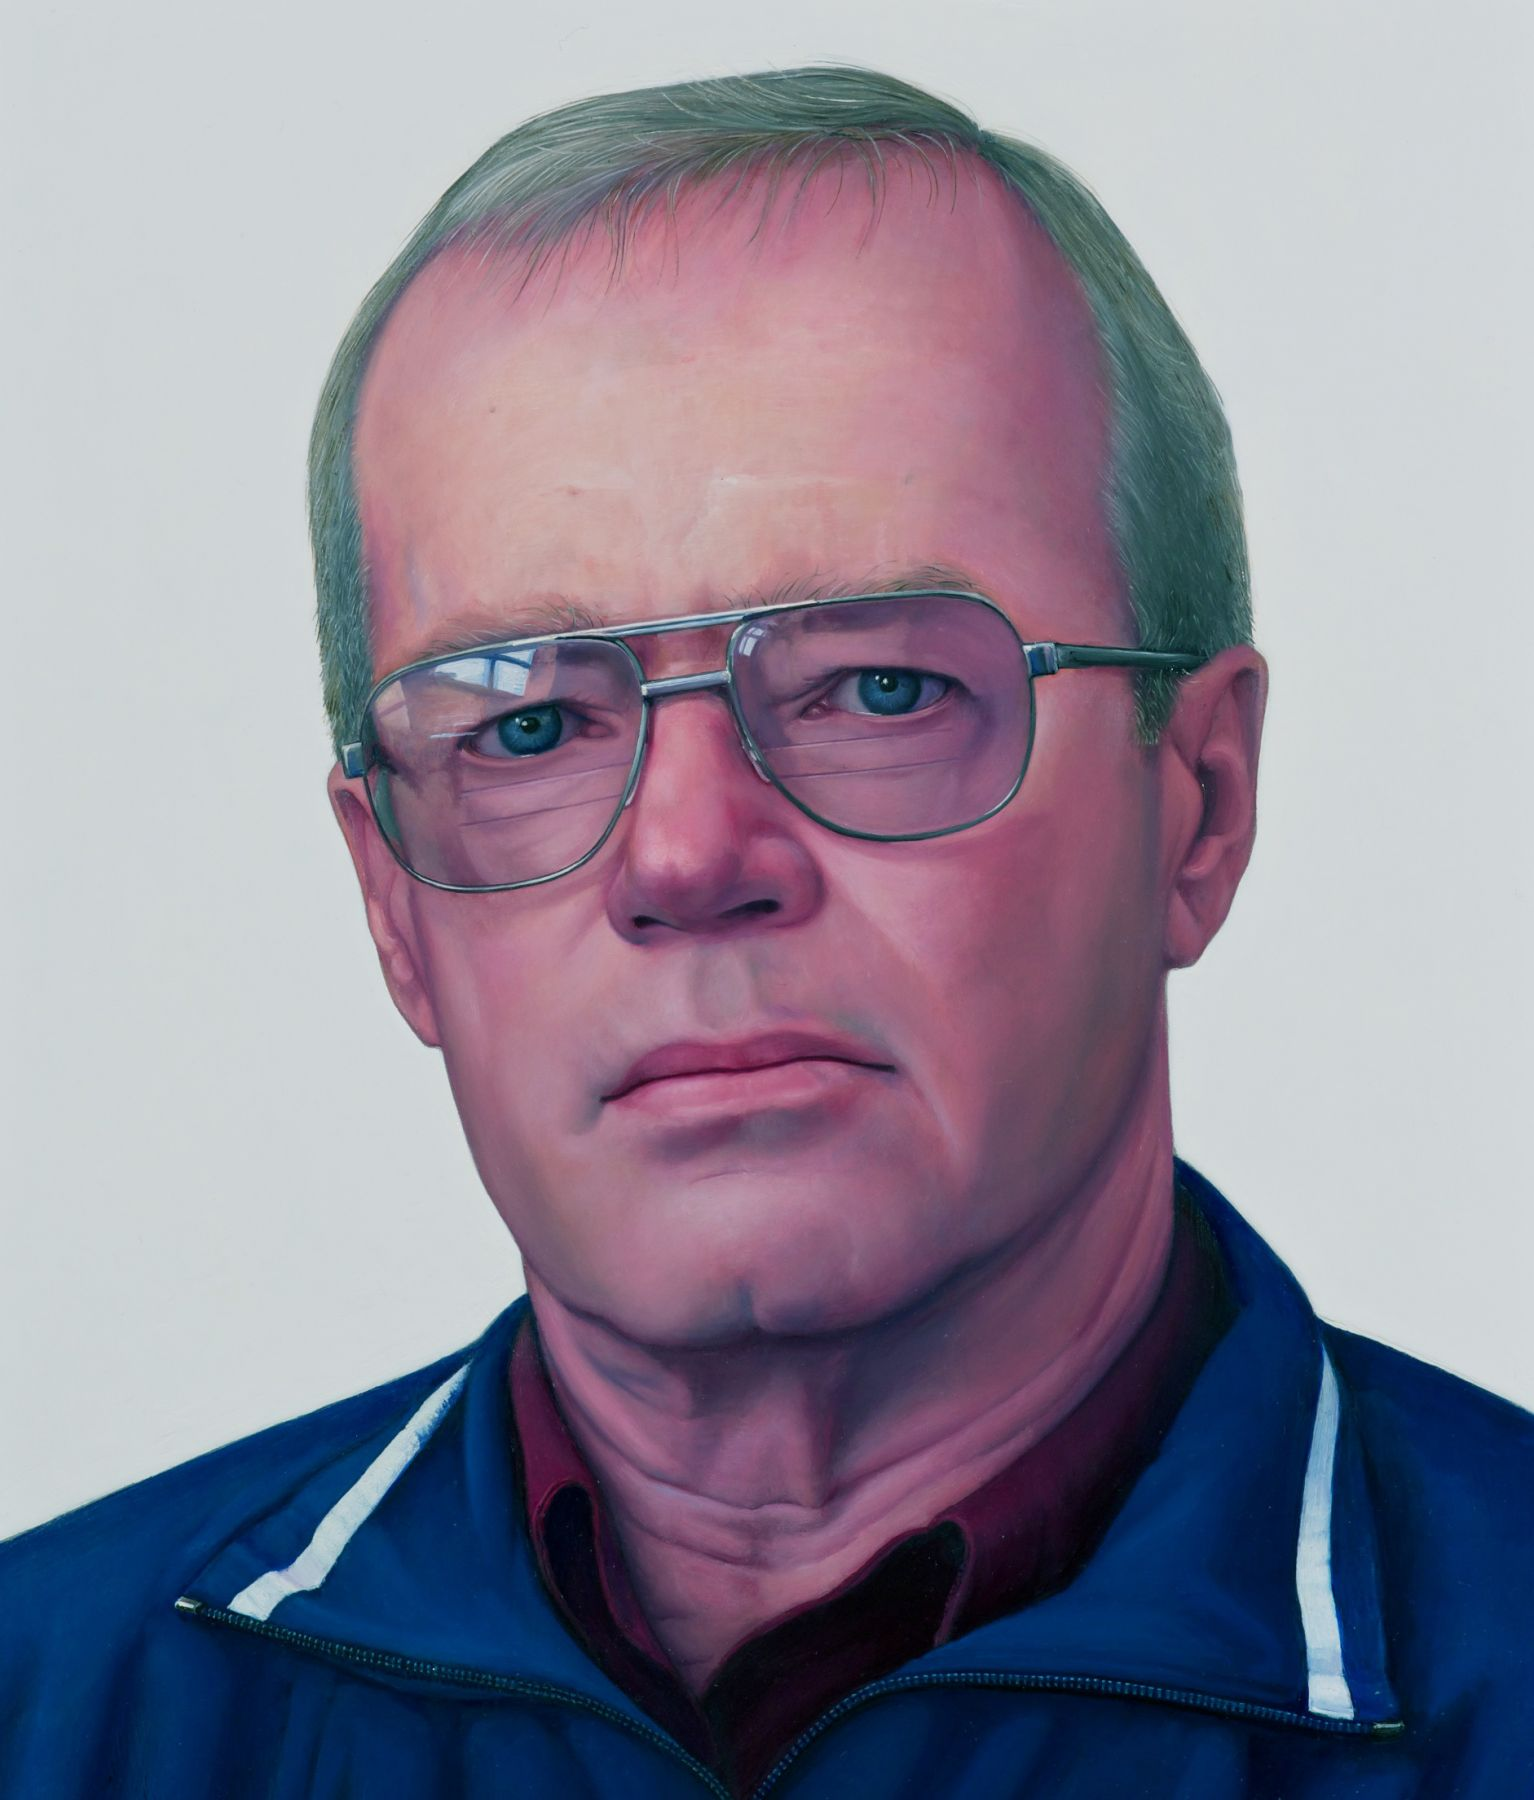 william beckman, Richard Beckman, 2008, oil on panel, 20 x 16 1/2 inches